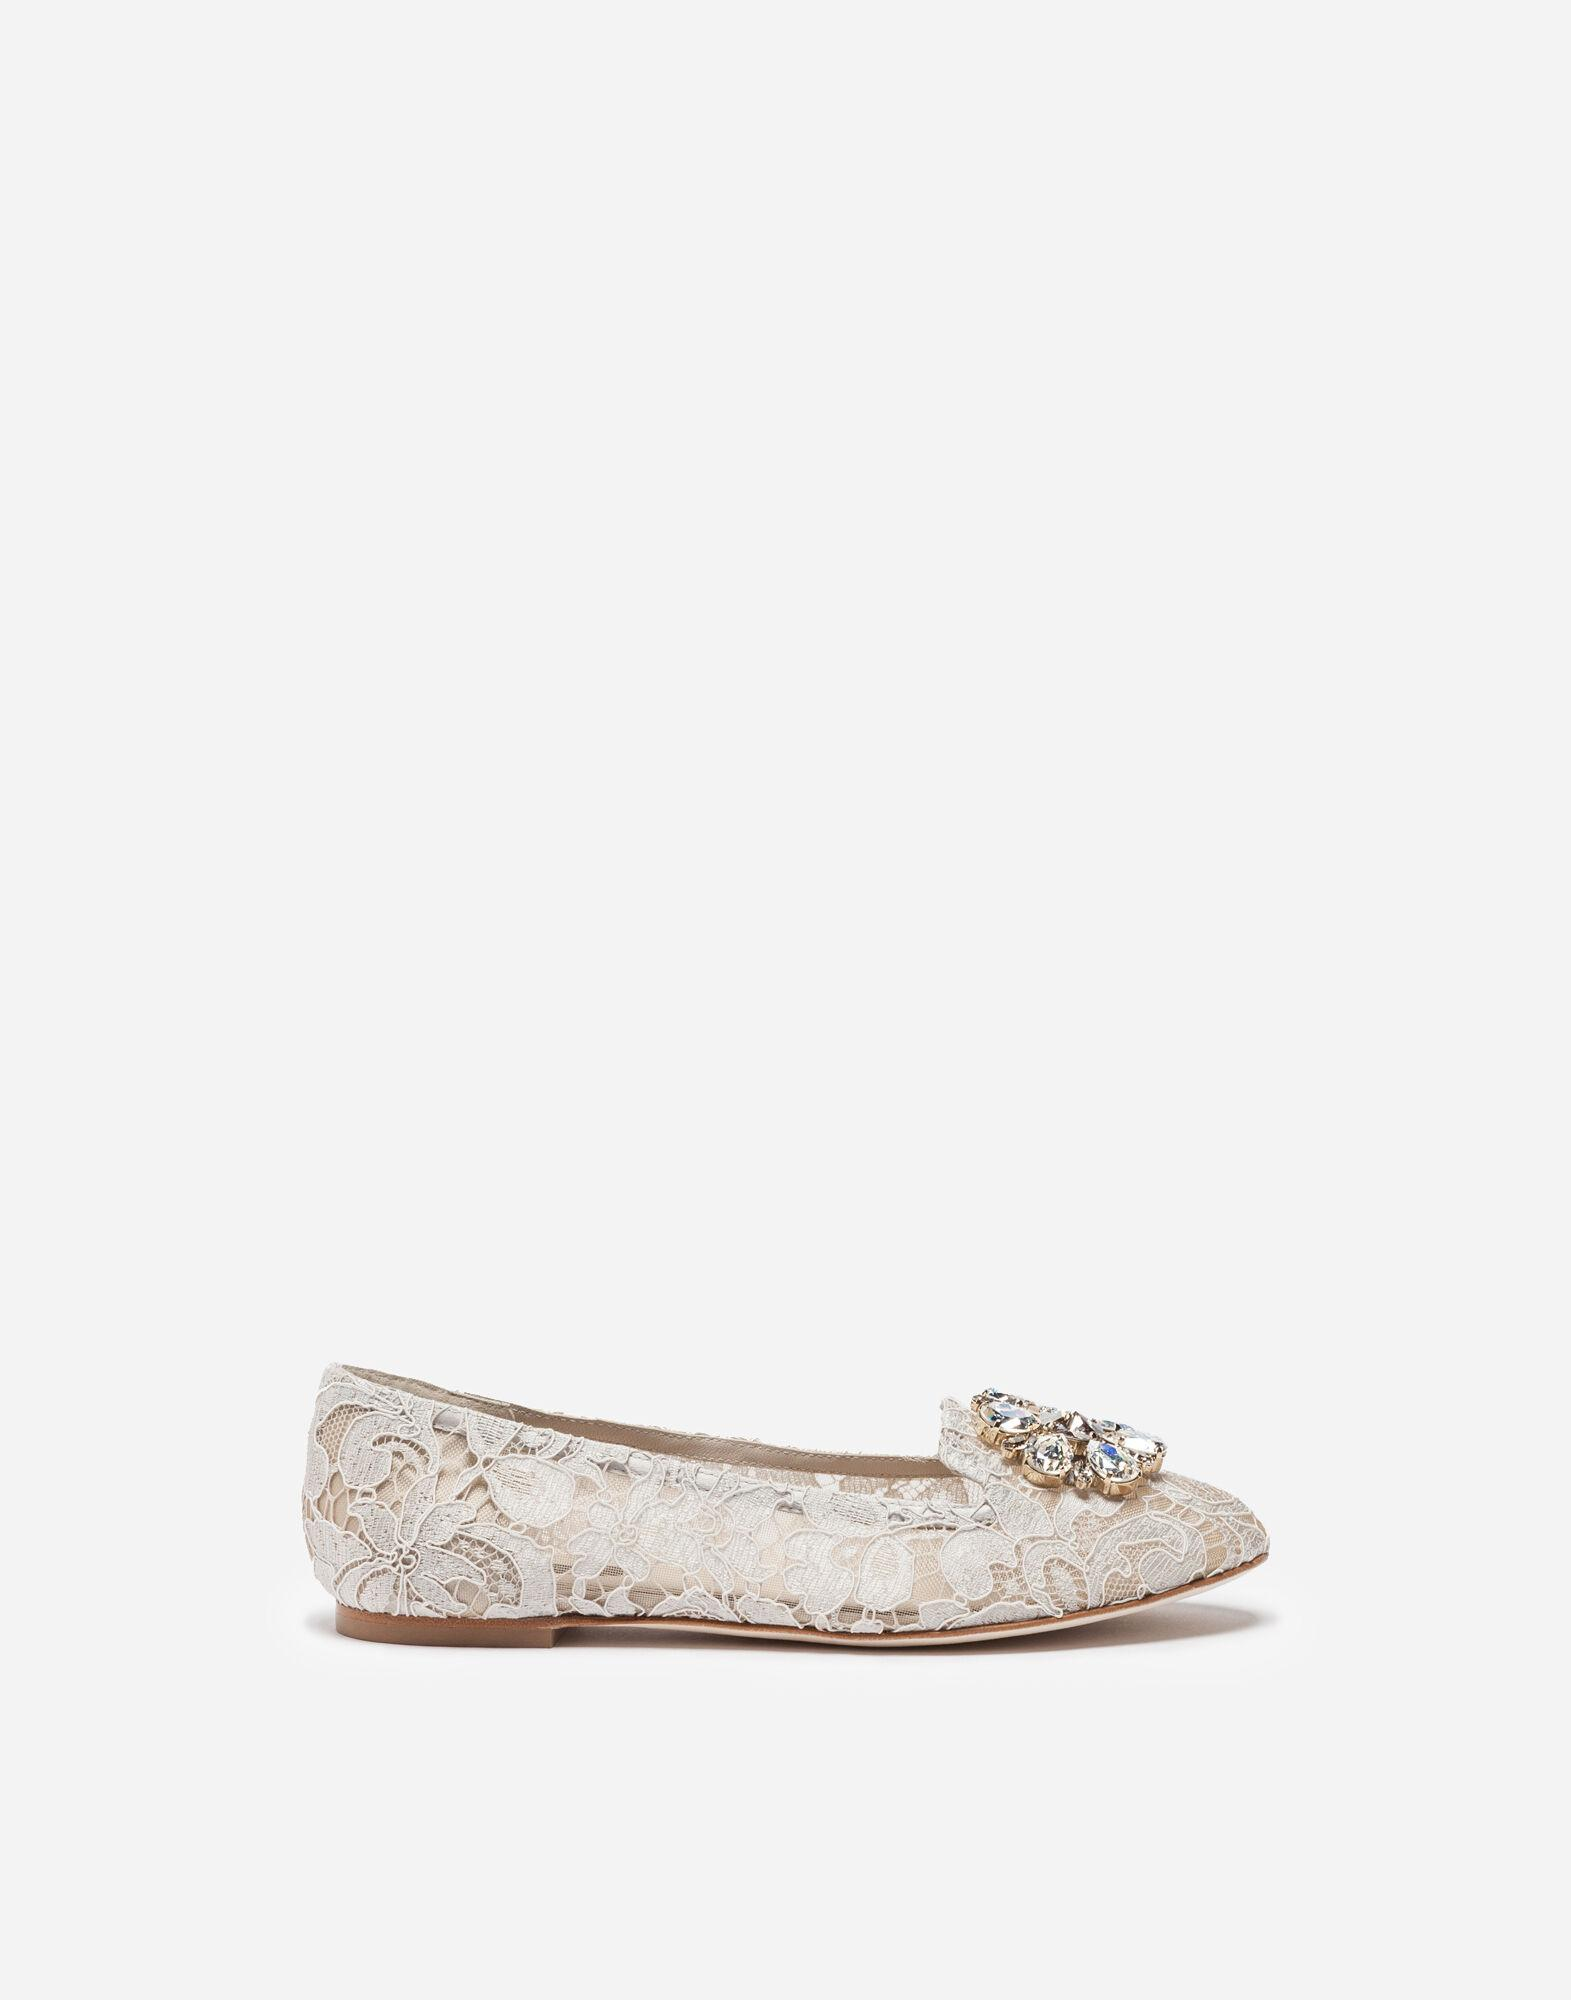 Slipper in Taormina lace with crystals 0